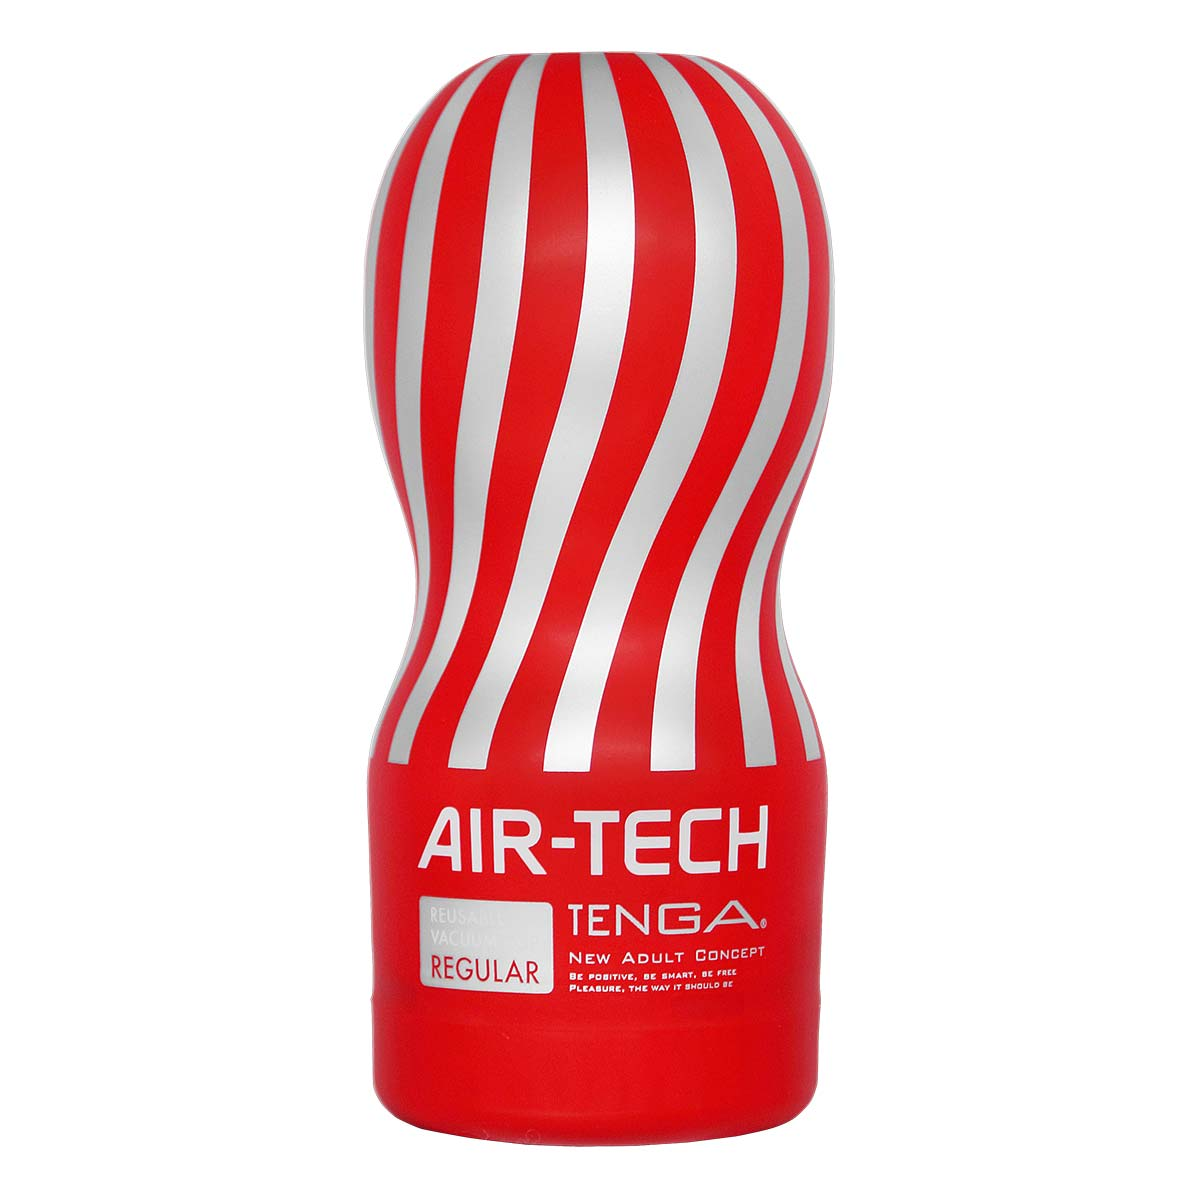 TENGA Air-Tech Reusable Vacuum CUP Regular